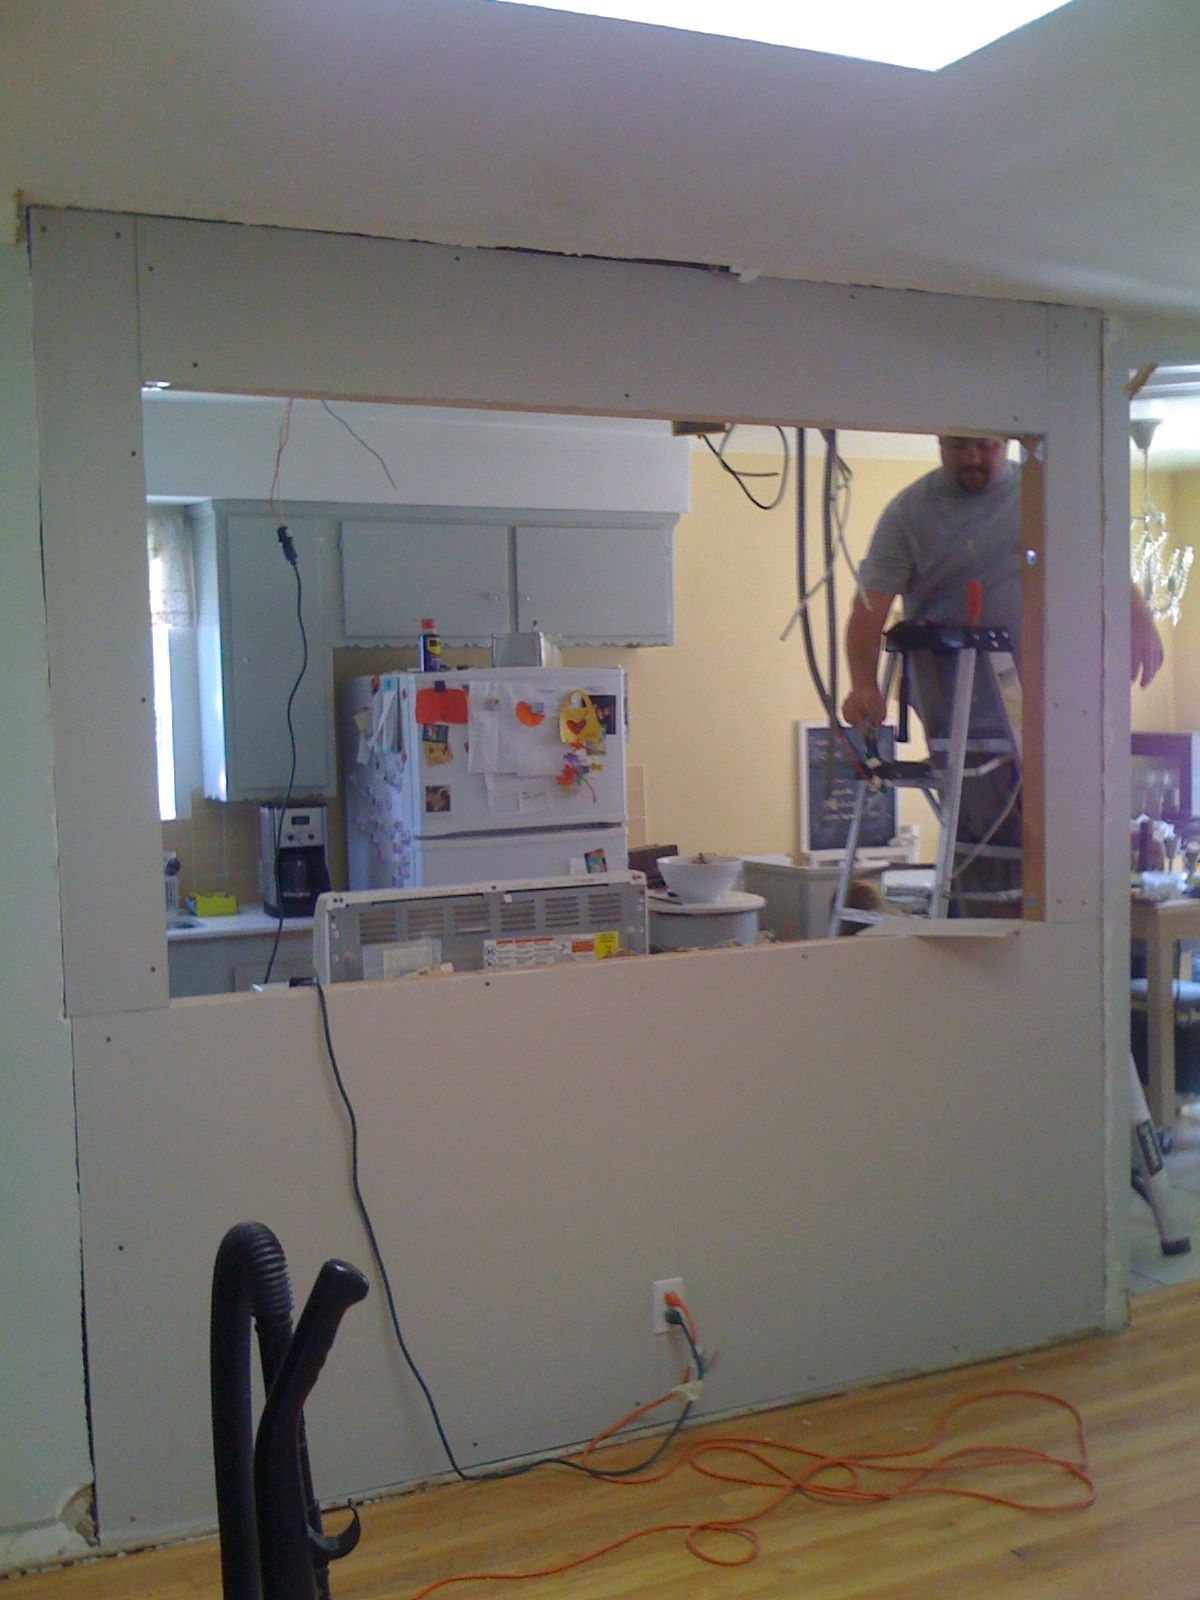 KNOCKING OUT A WALL TO INSTALL BAR